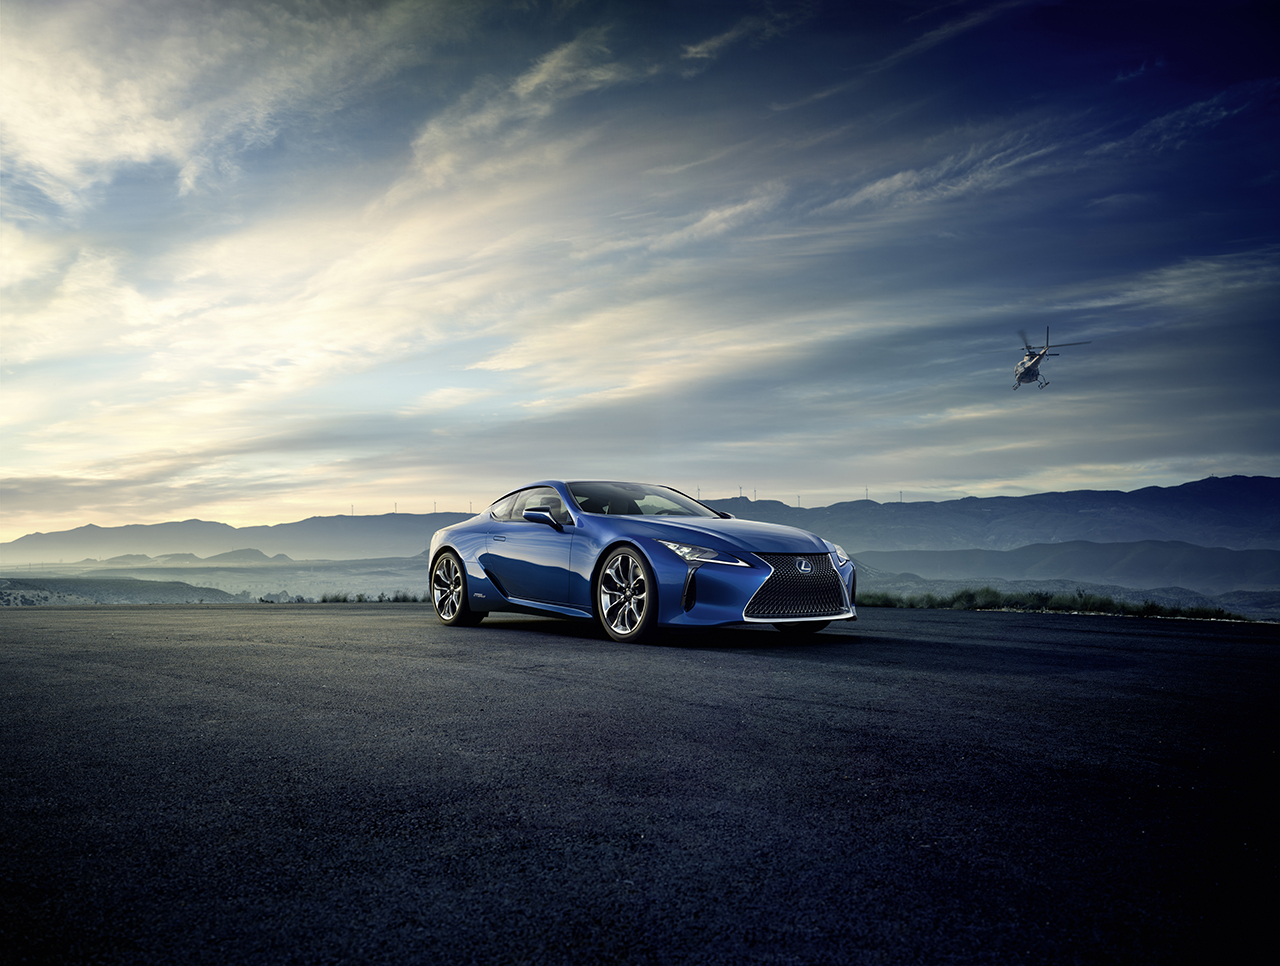 2016 Geneva Preview - Lexus LC500h